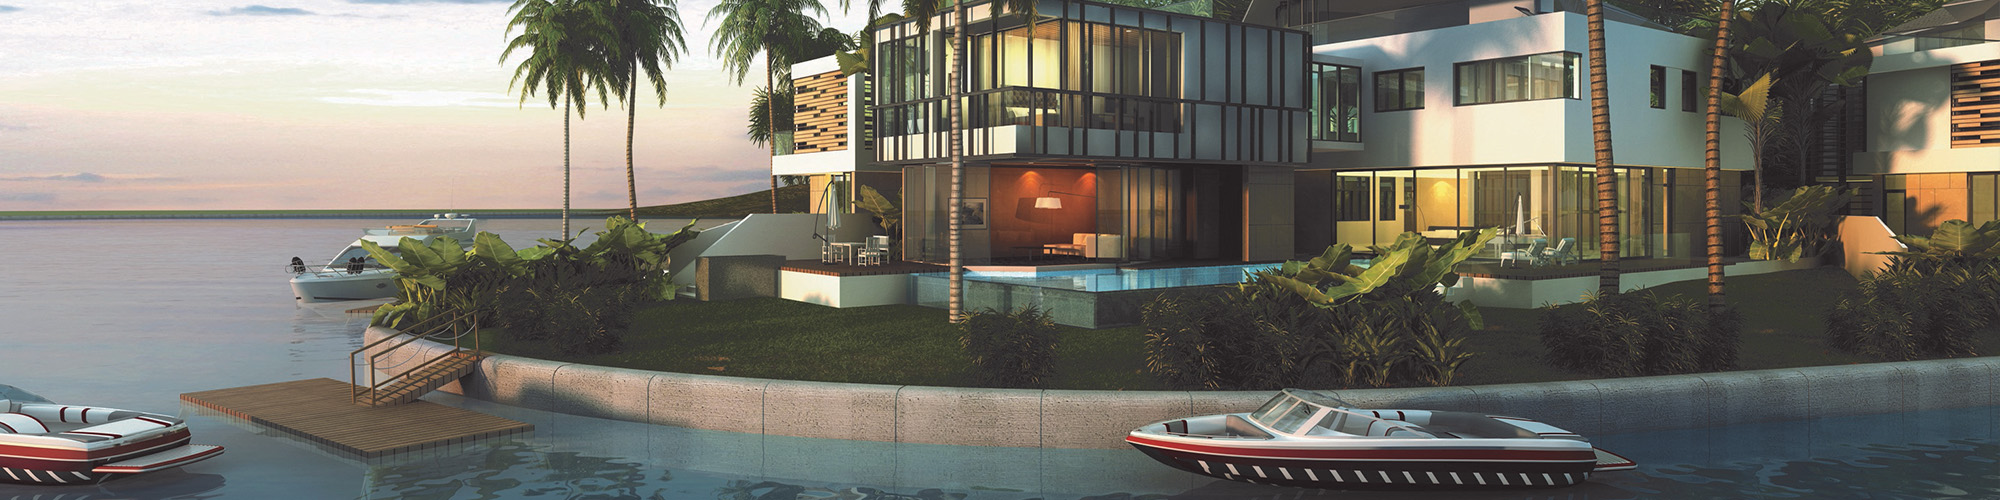 Waterfront Villa, Luxury Home Singapore